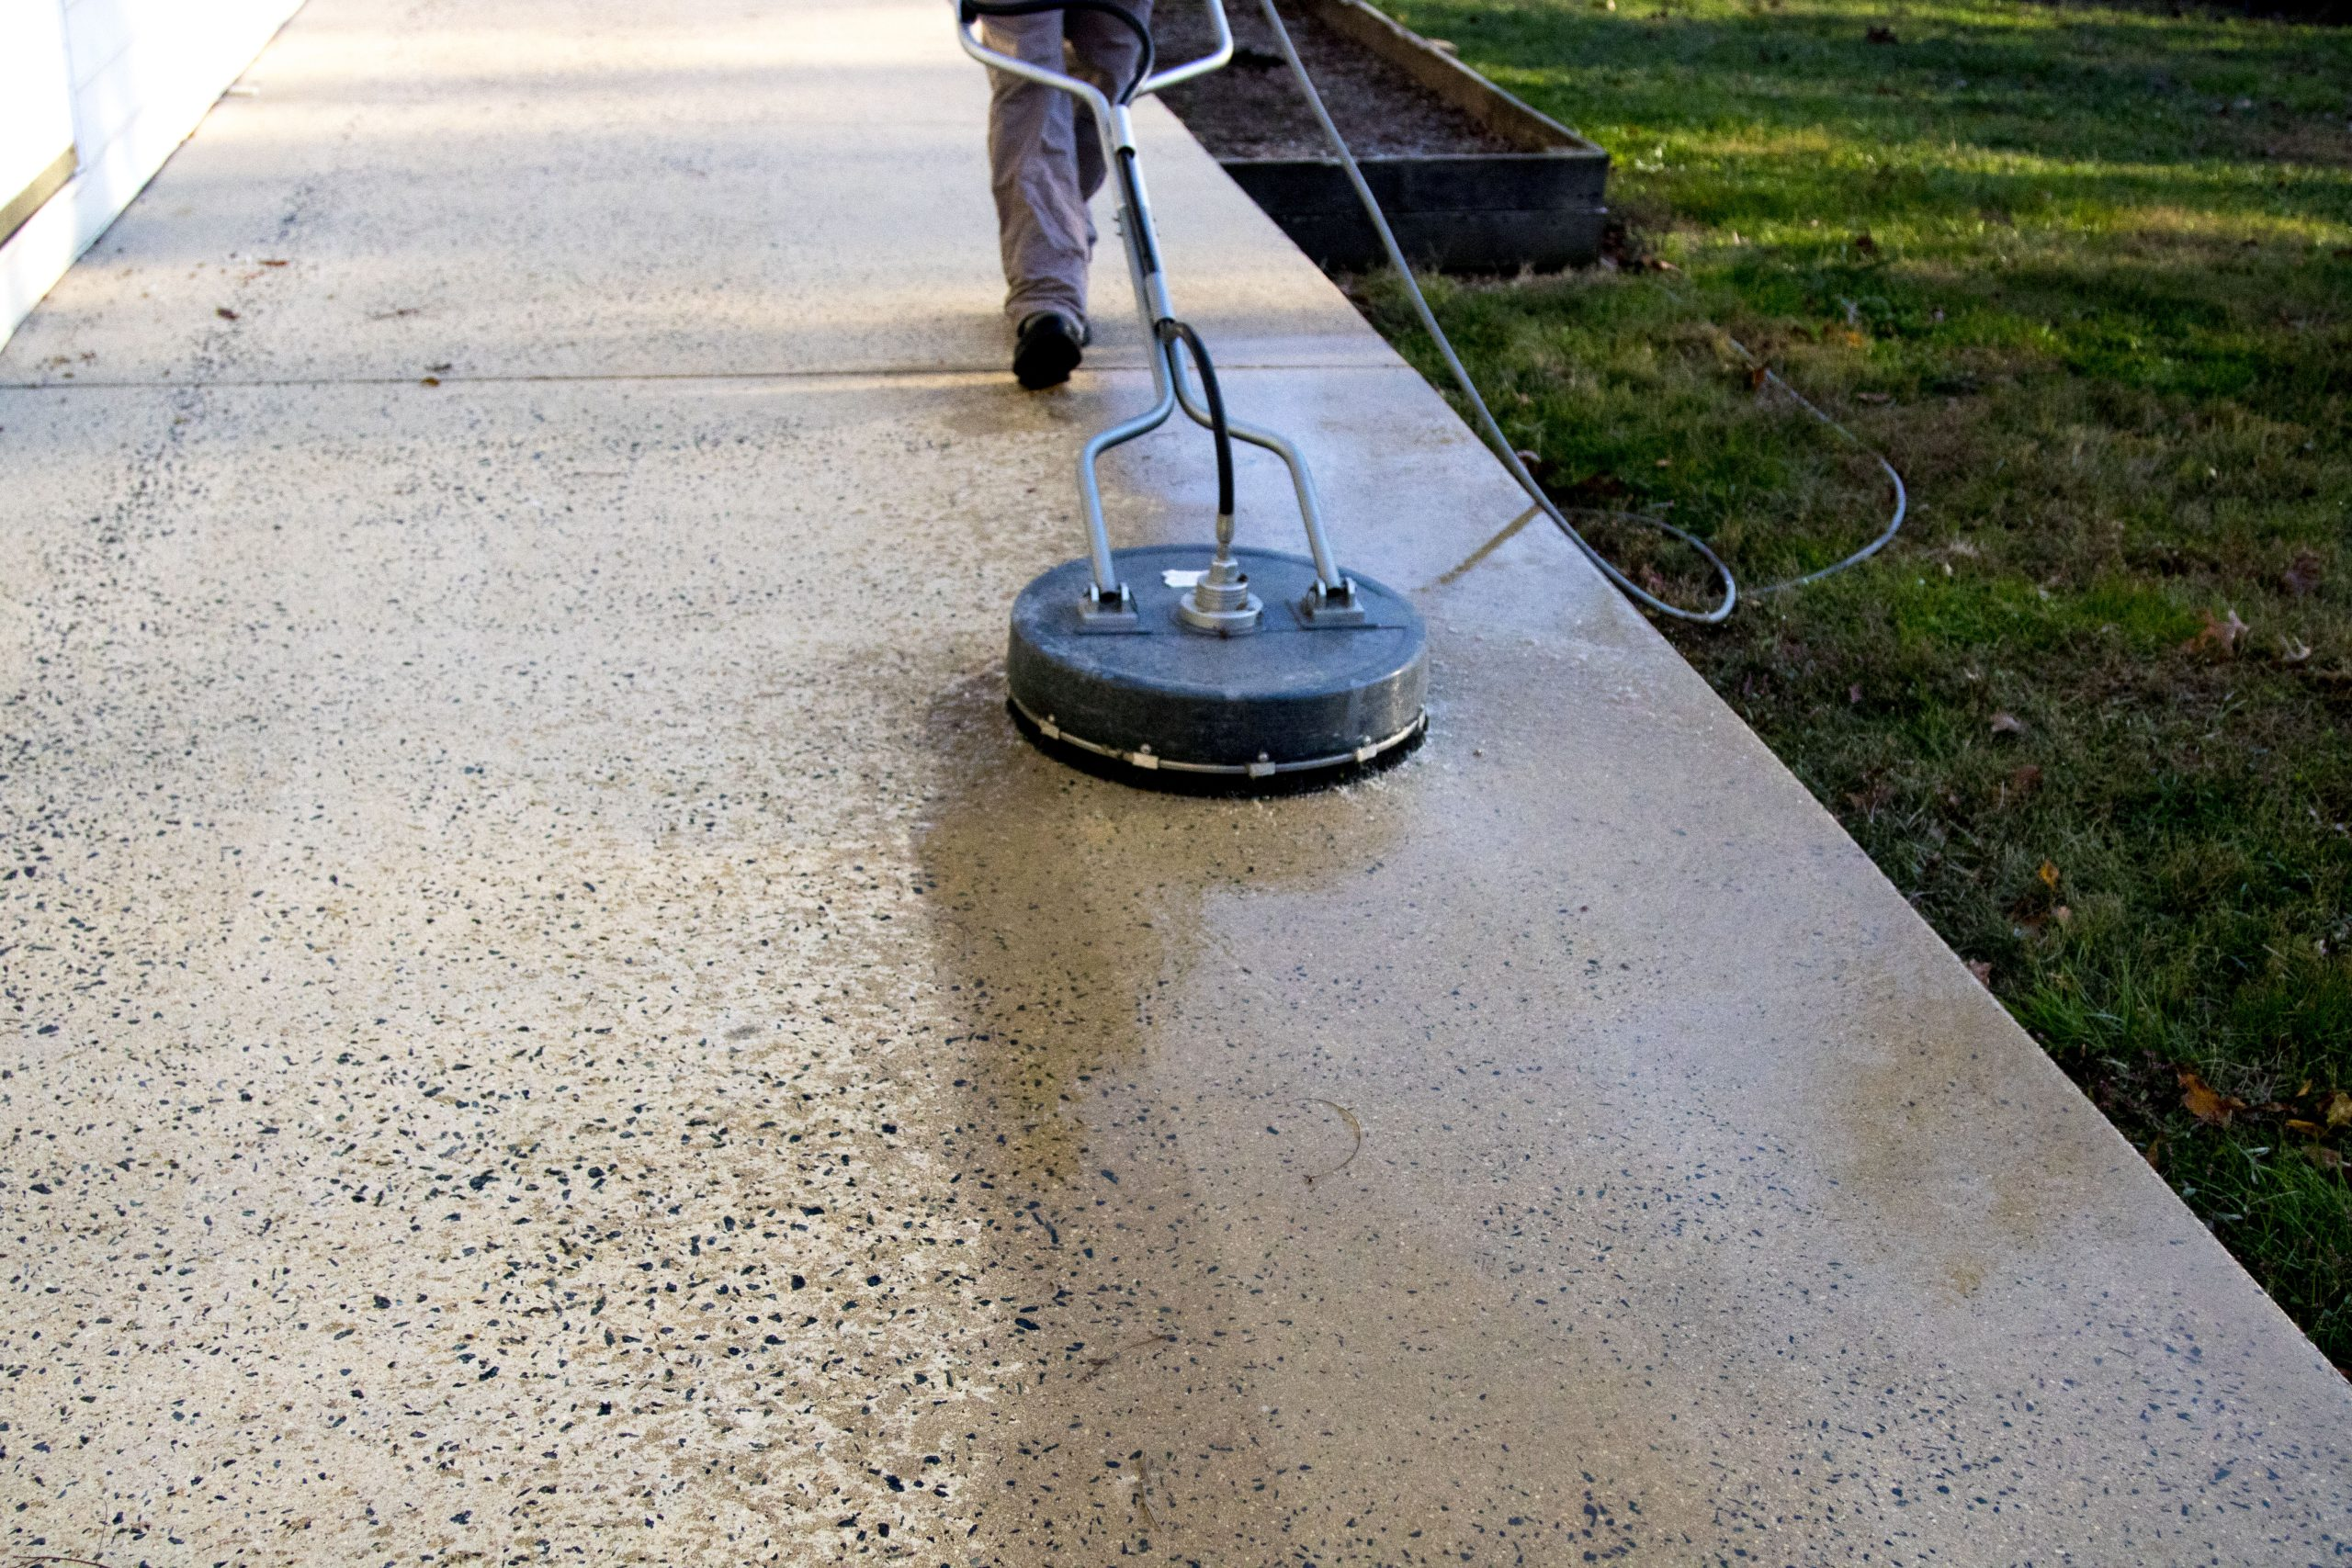 CONCRETE CLEANING FOR HOMEOWNERS